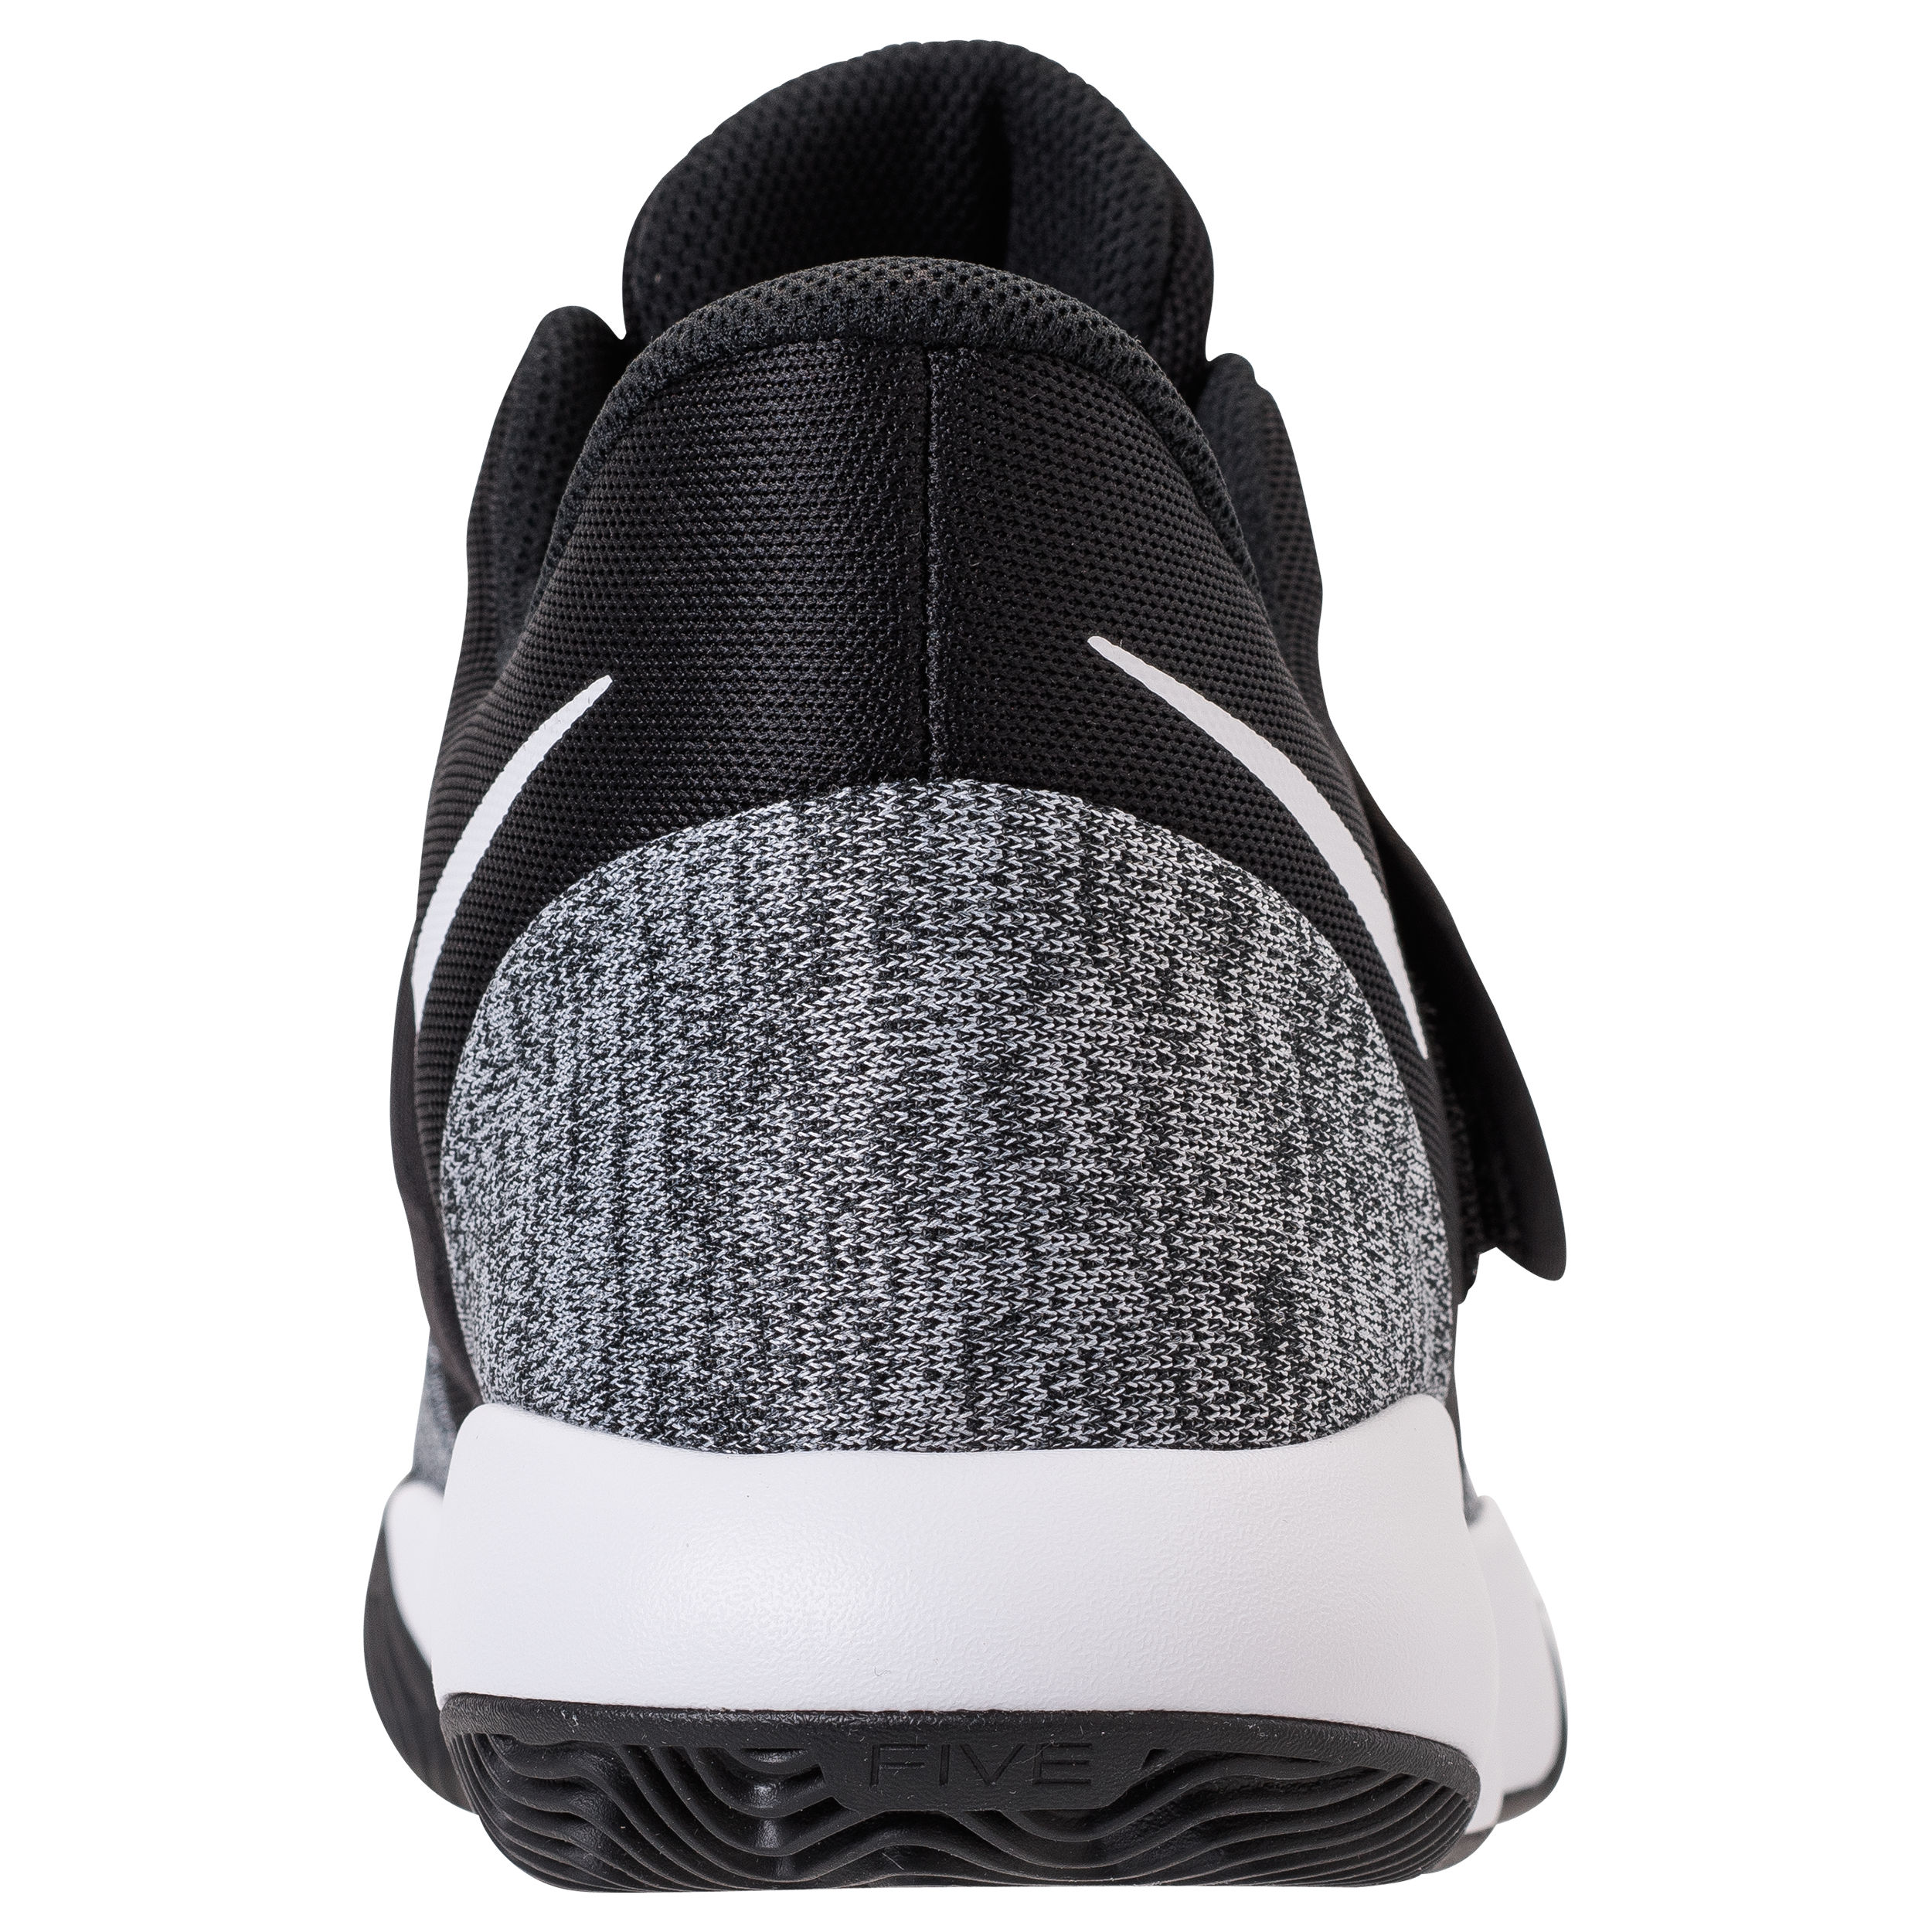 detailed look 11b0d 7f4bc inexpensive nike mens kd trey 5 iv tb white black e9259 873cc  clearance nike  kd trey 6 7cf42 dd6af